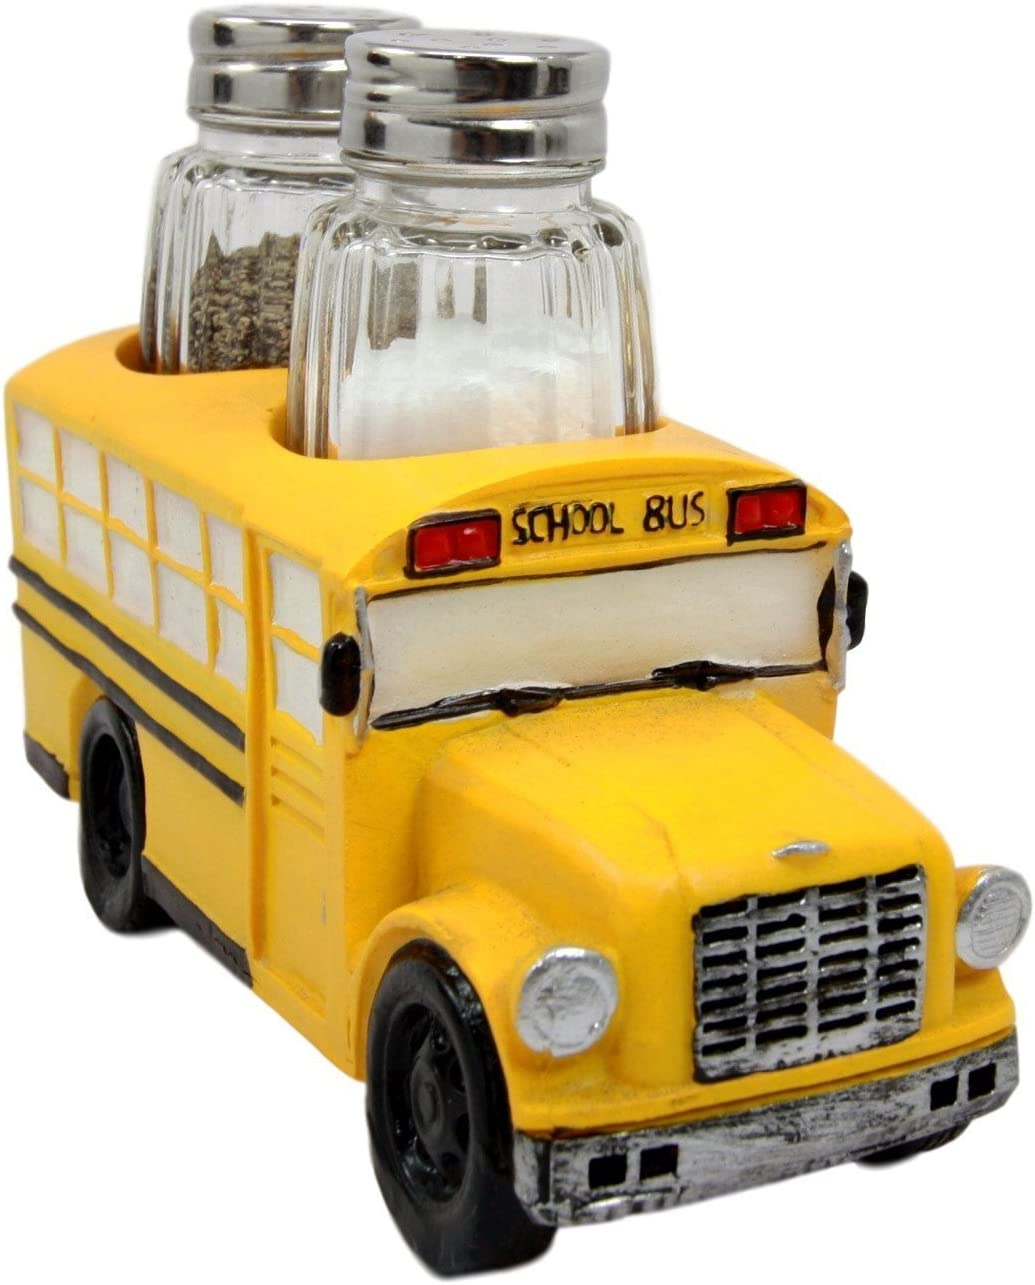 Atlantic Collectibles North American Yellow School Bus Decorative Glass Salt Pepper Shakers Holder Resin Figurine 6L